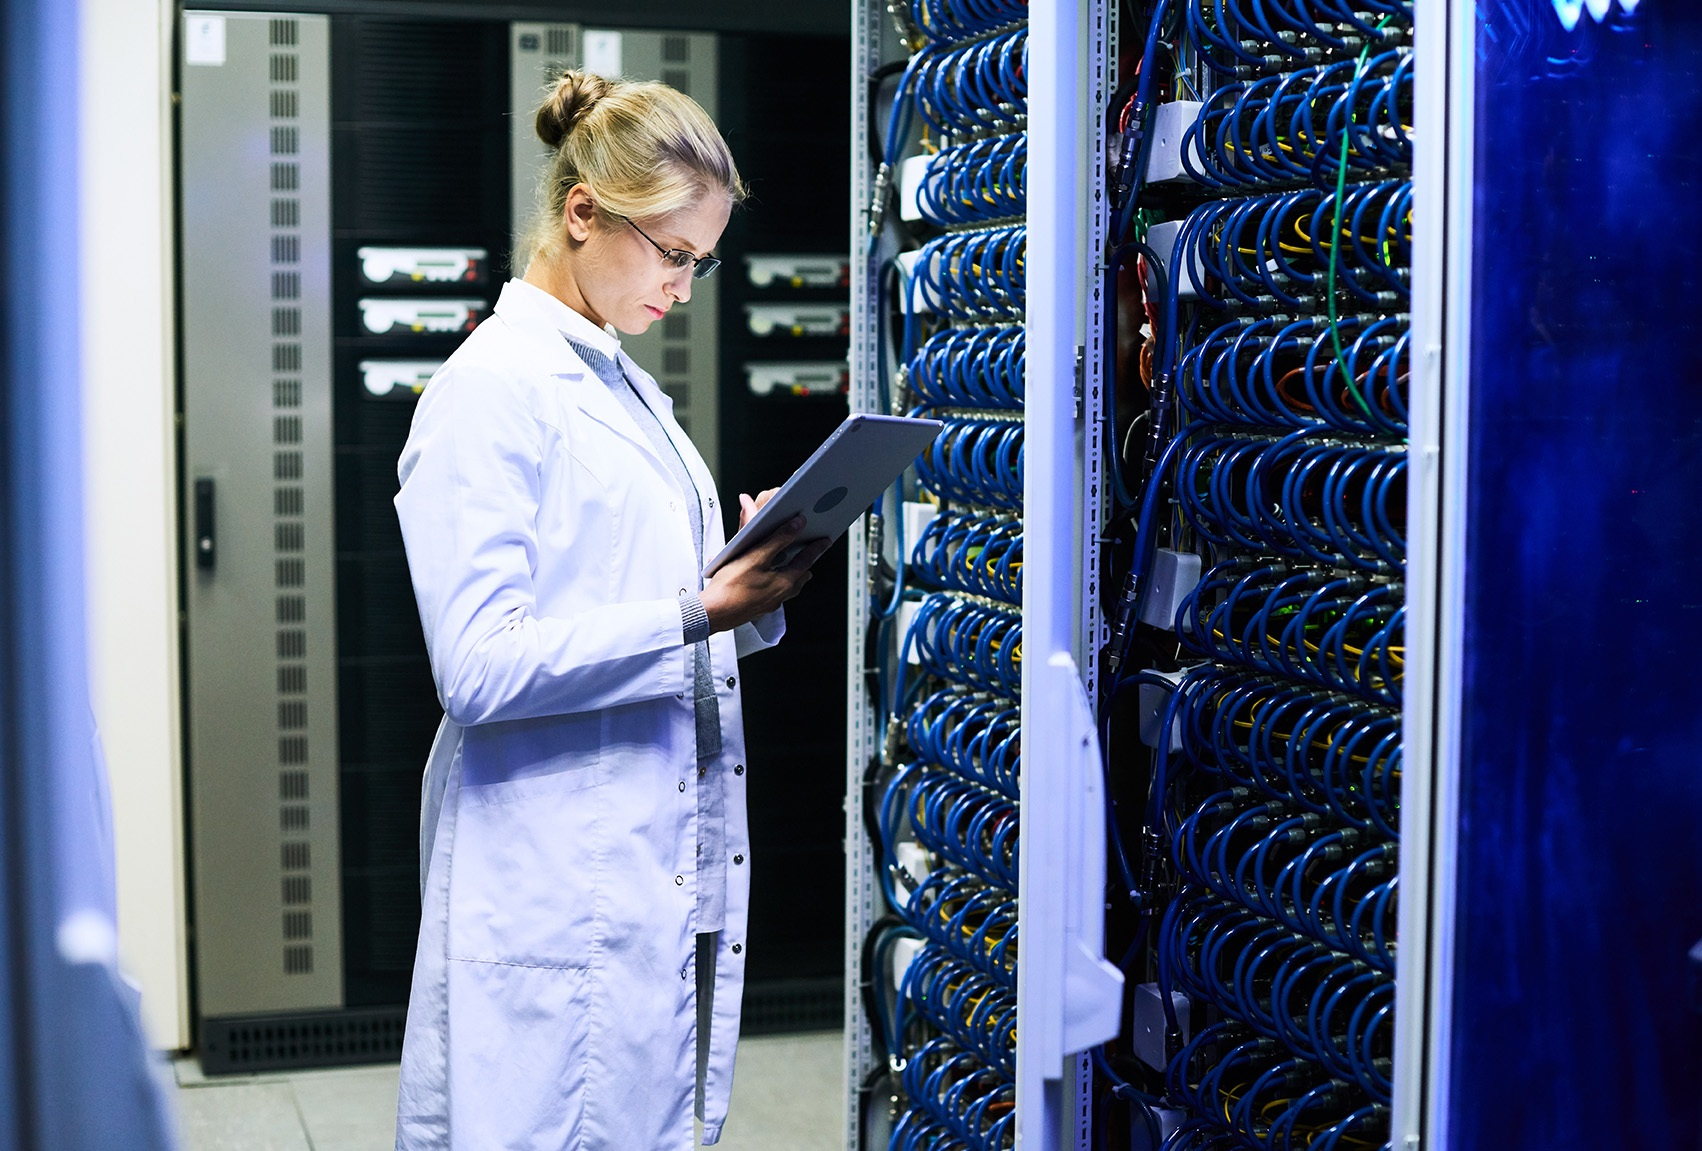 woman-in-lab-coat-working-in-data-centre.jpg